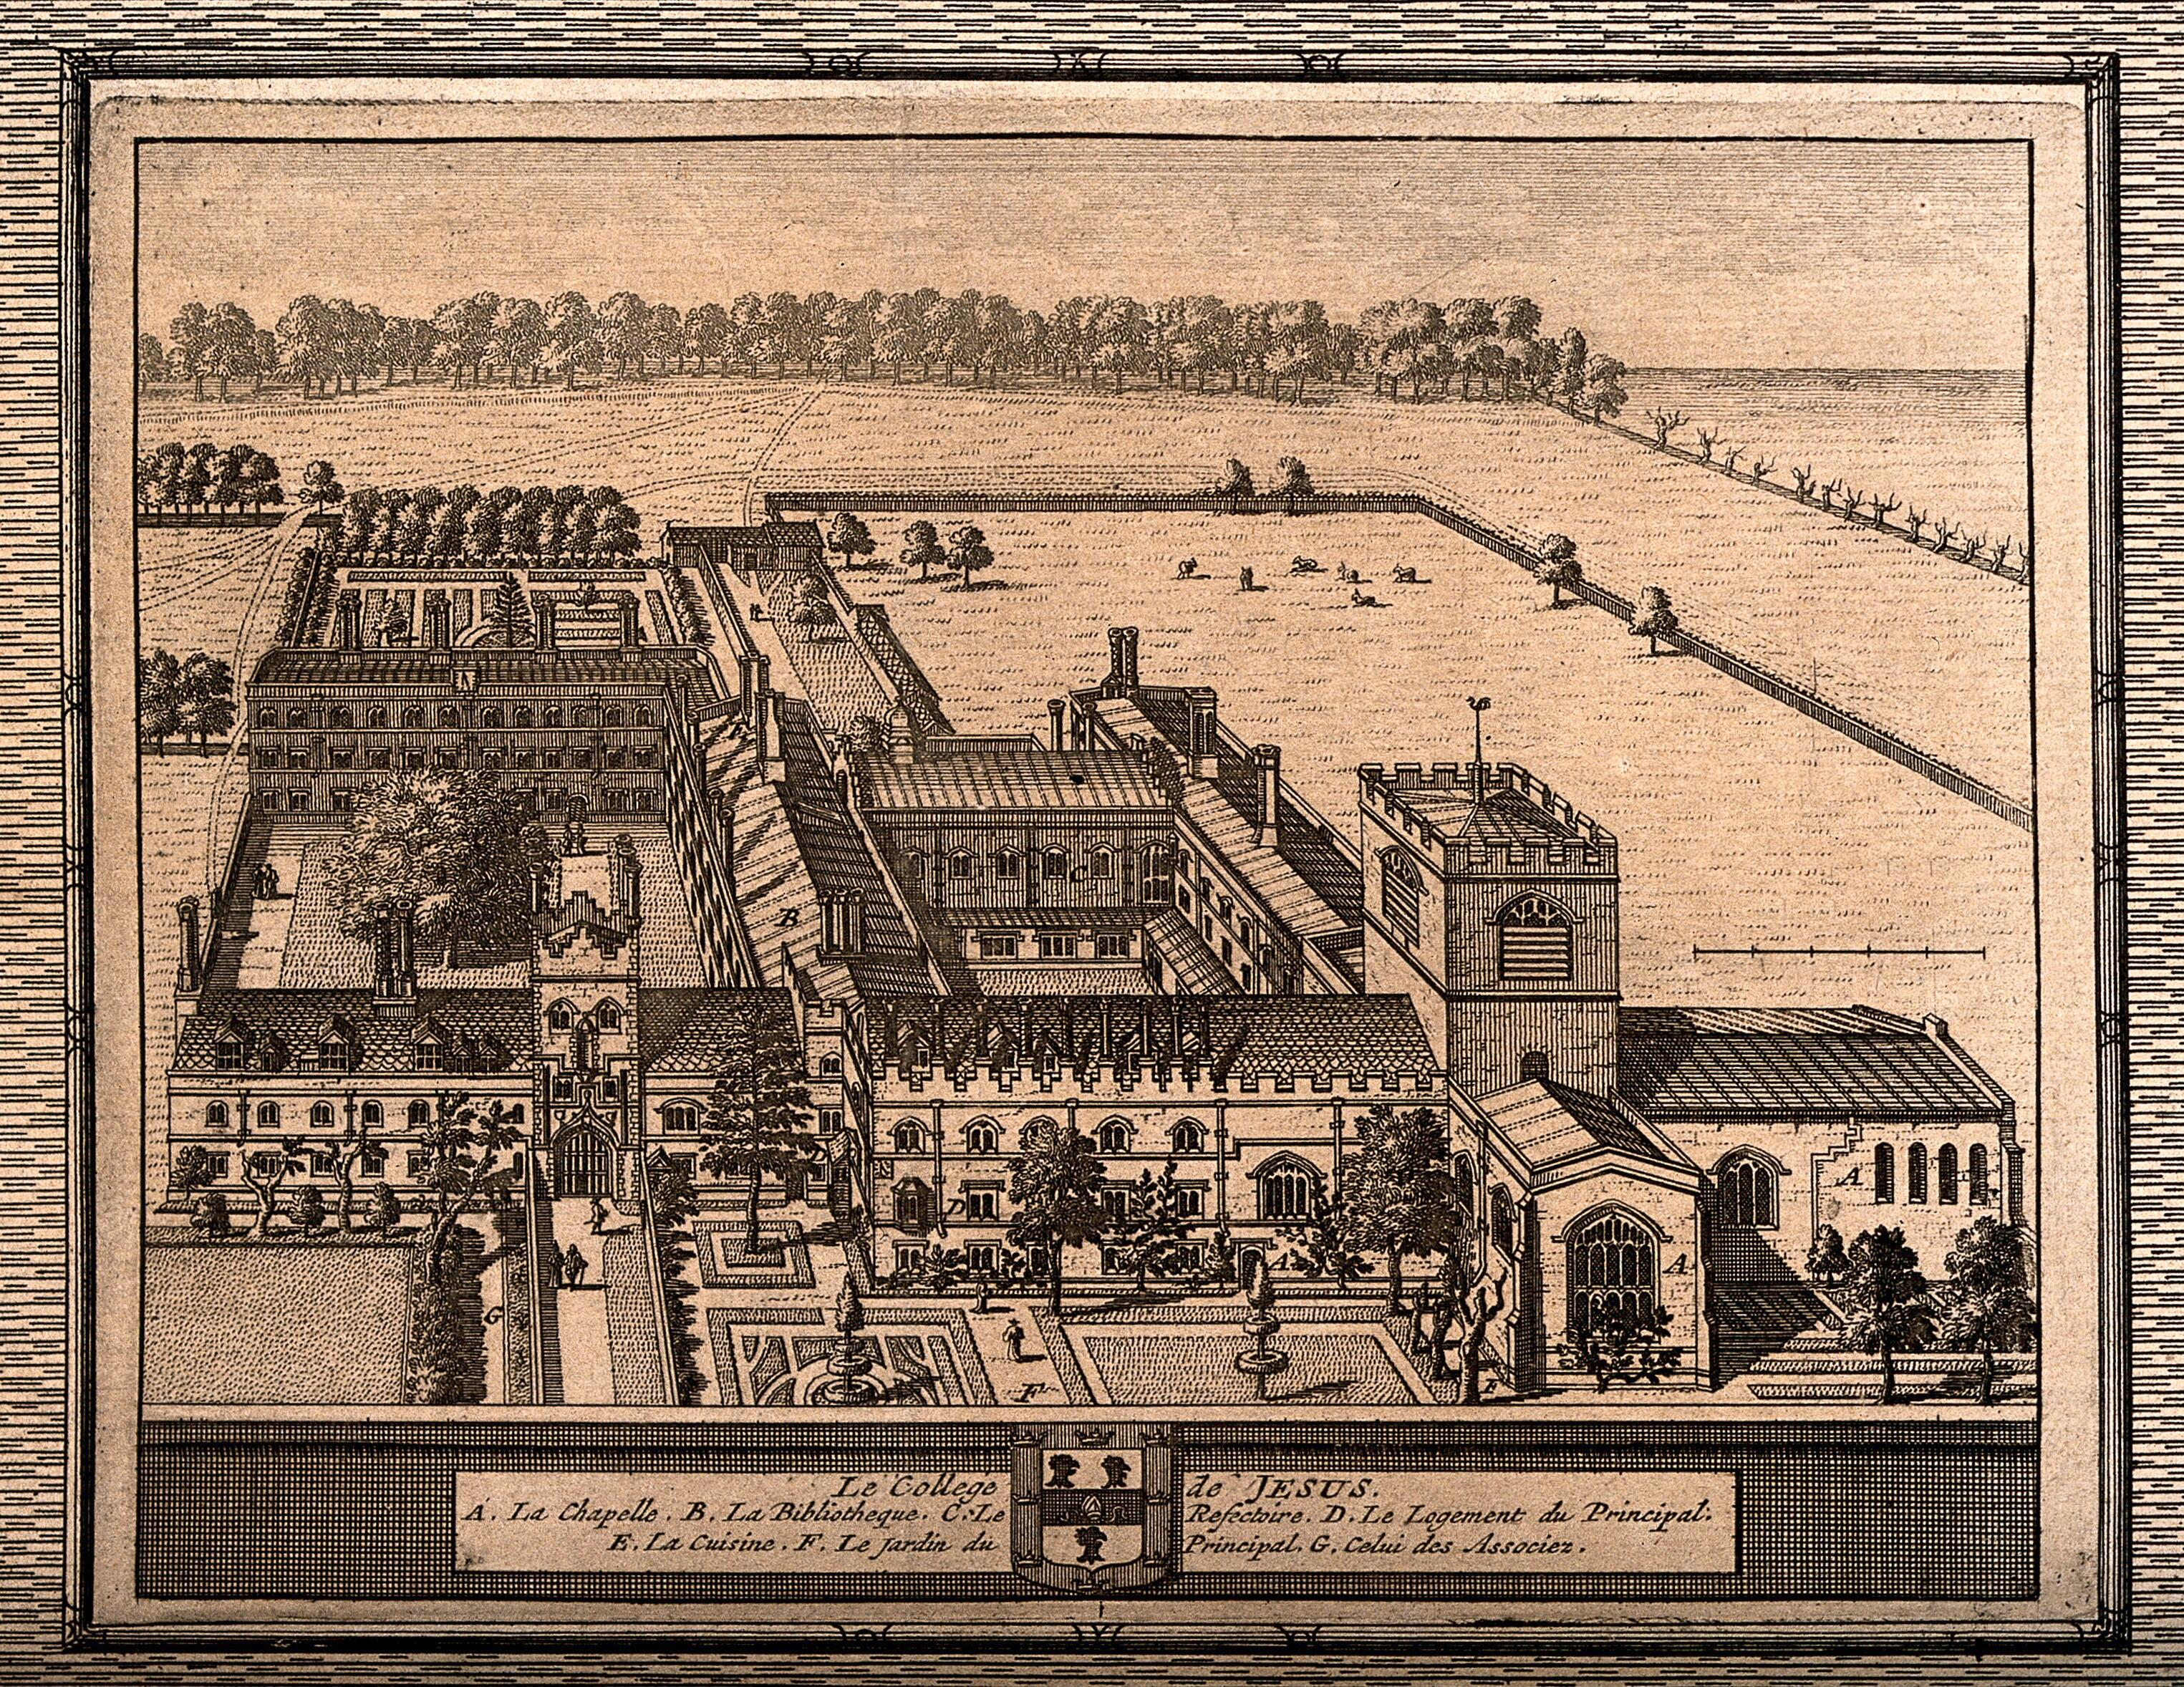 Jesus College, Cambridge: bird's eye view with a key and coat of